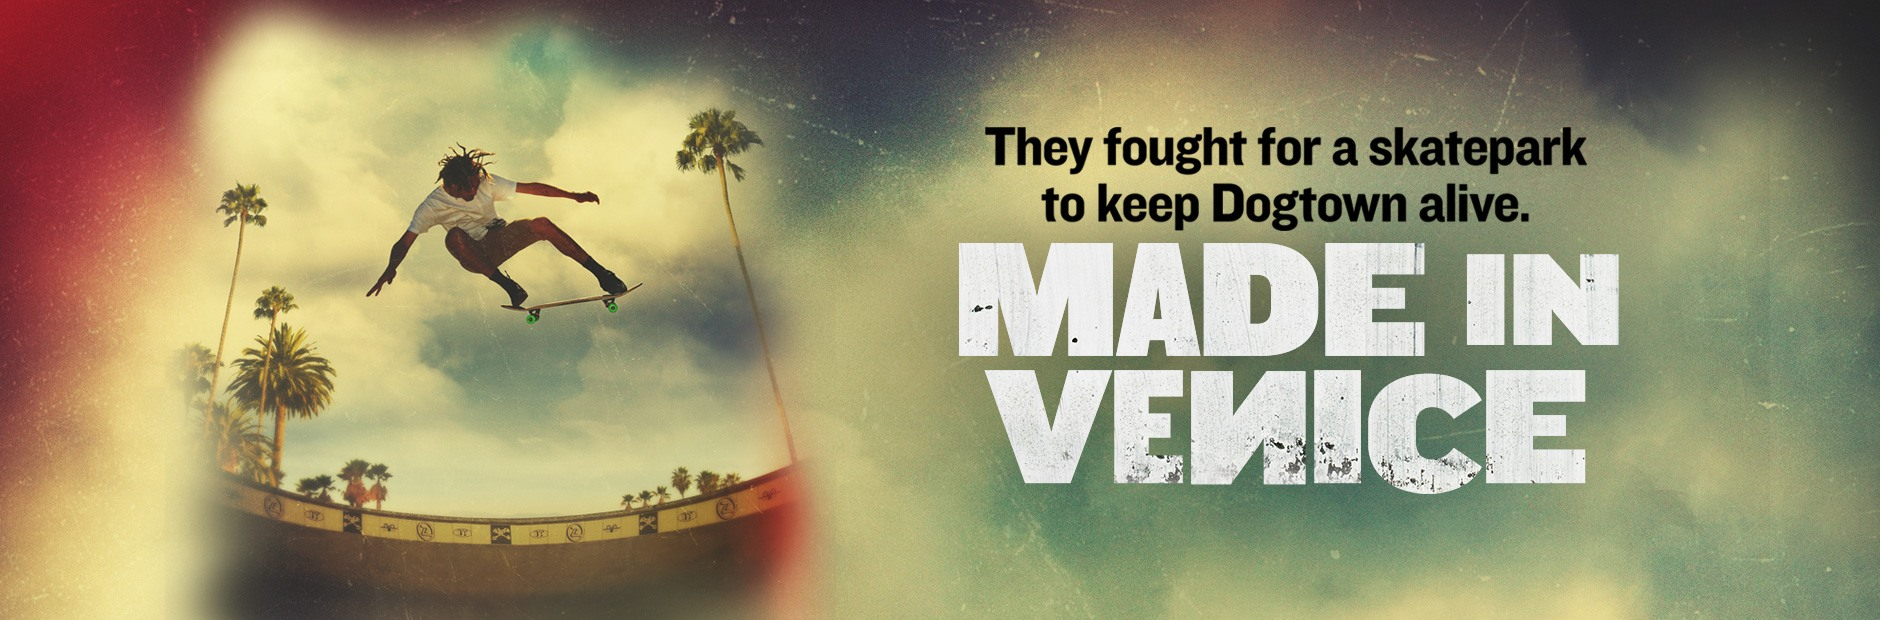 Made In Venice - the rebirth of dogtown